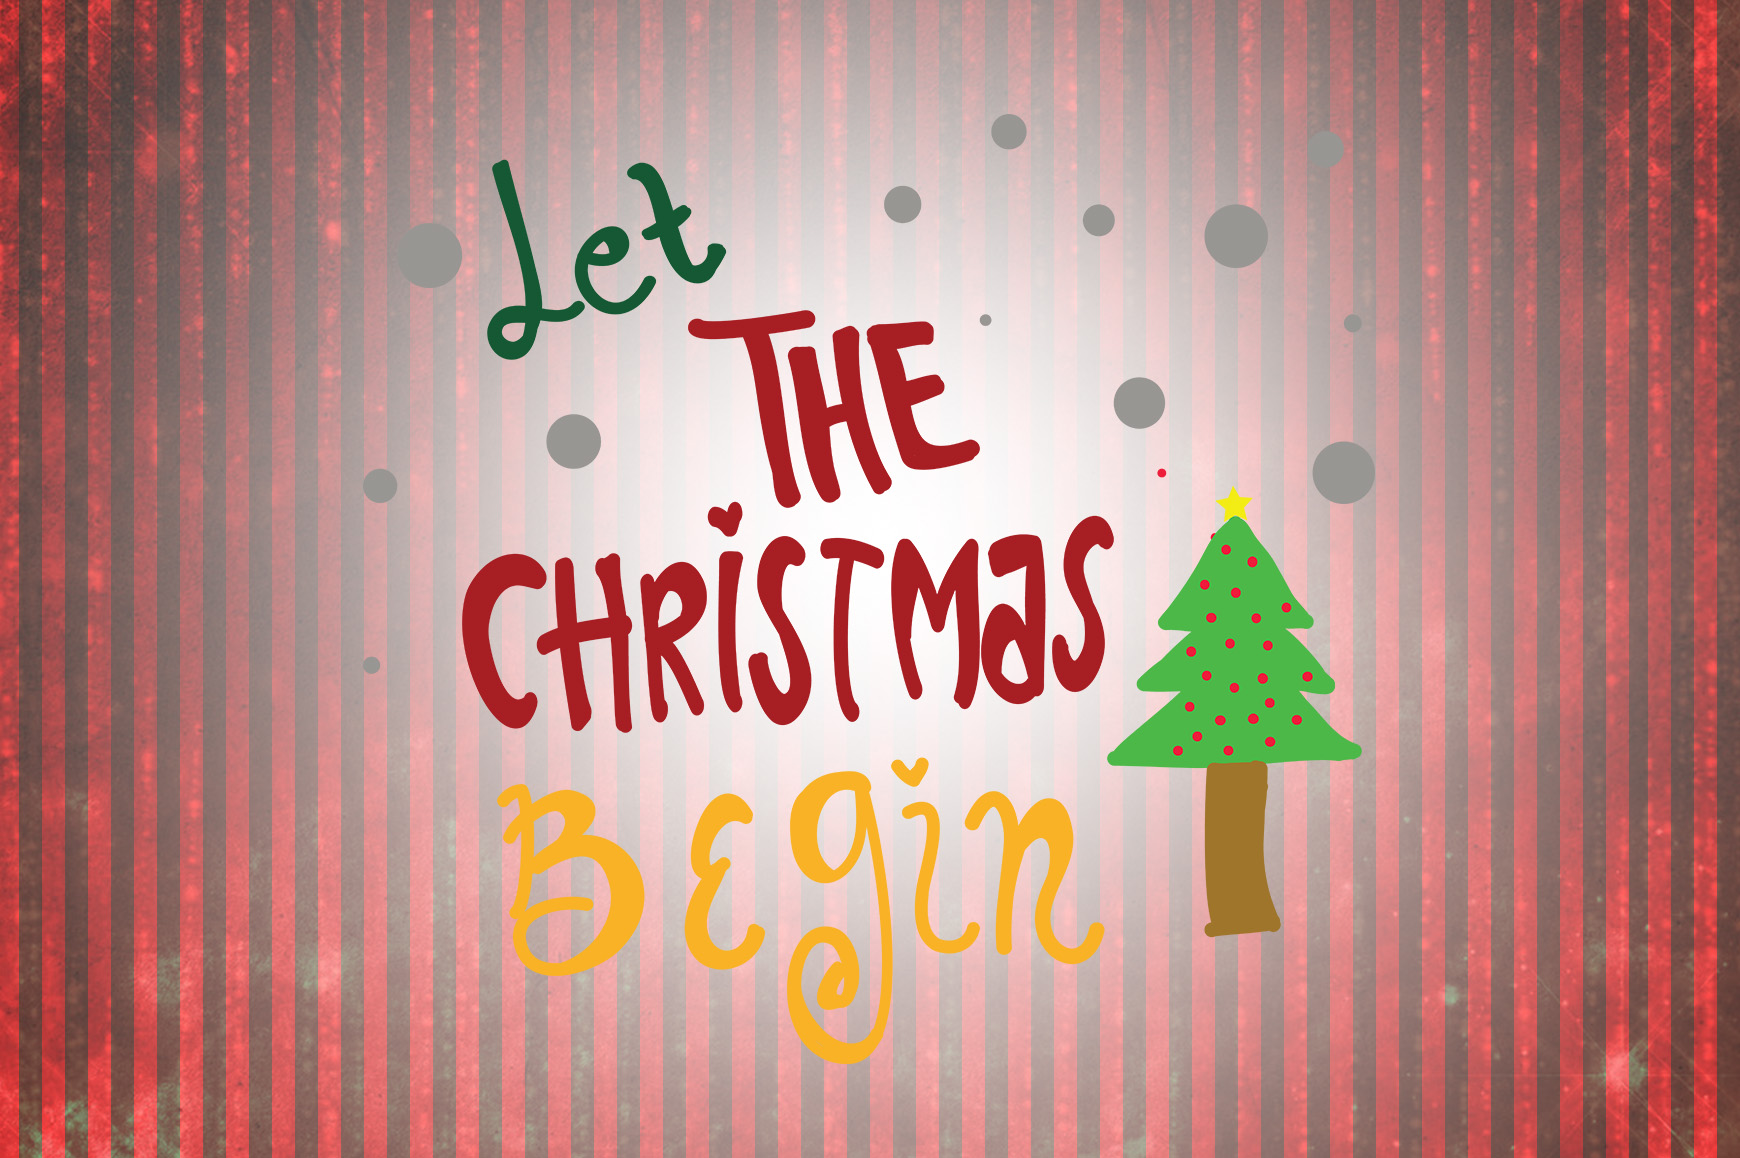 Let The Christmas Begin Christmas Quotes Graphic By